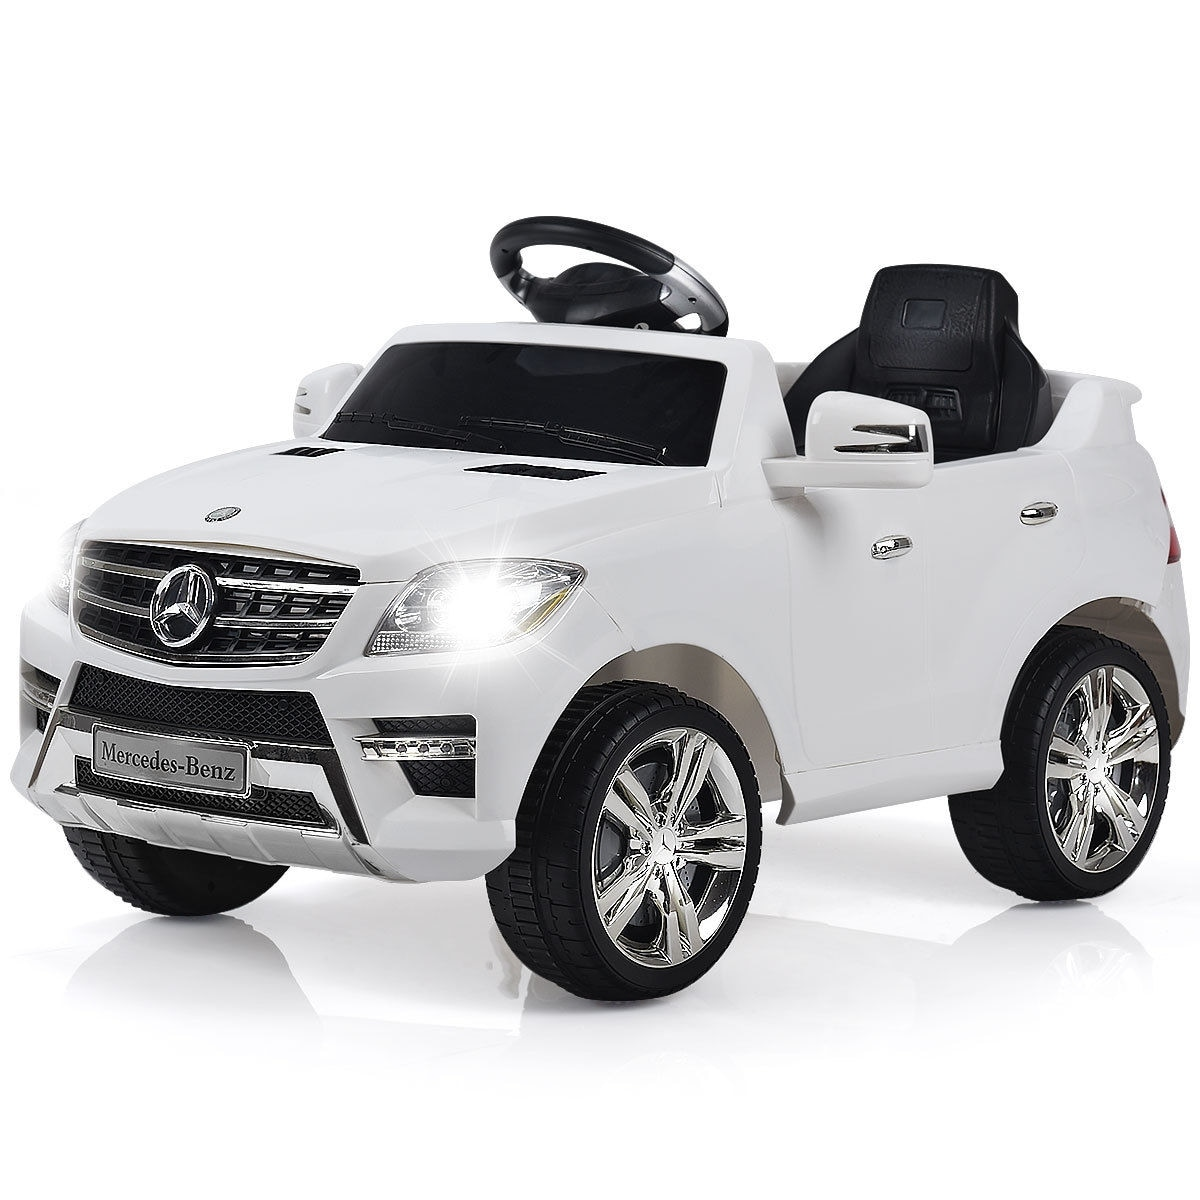 b1194809ea18 Buy Powered Riding Toys Online at Overstock | Our Best Bicycles, Ride-On  Toys & Scooters Deals